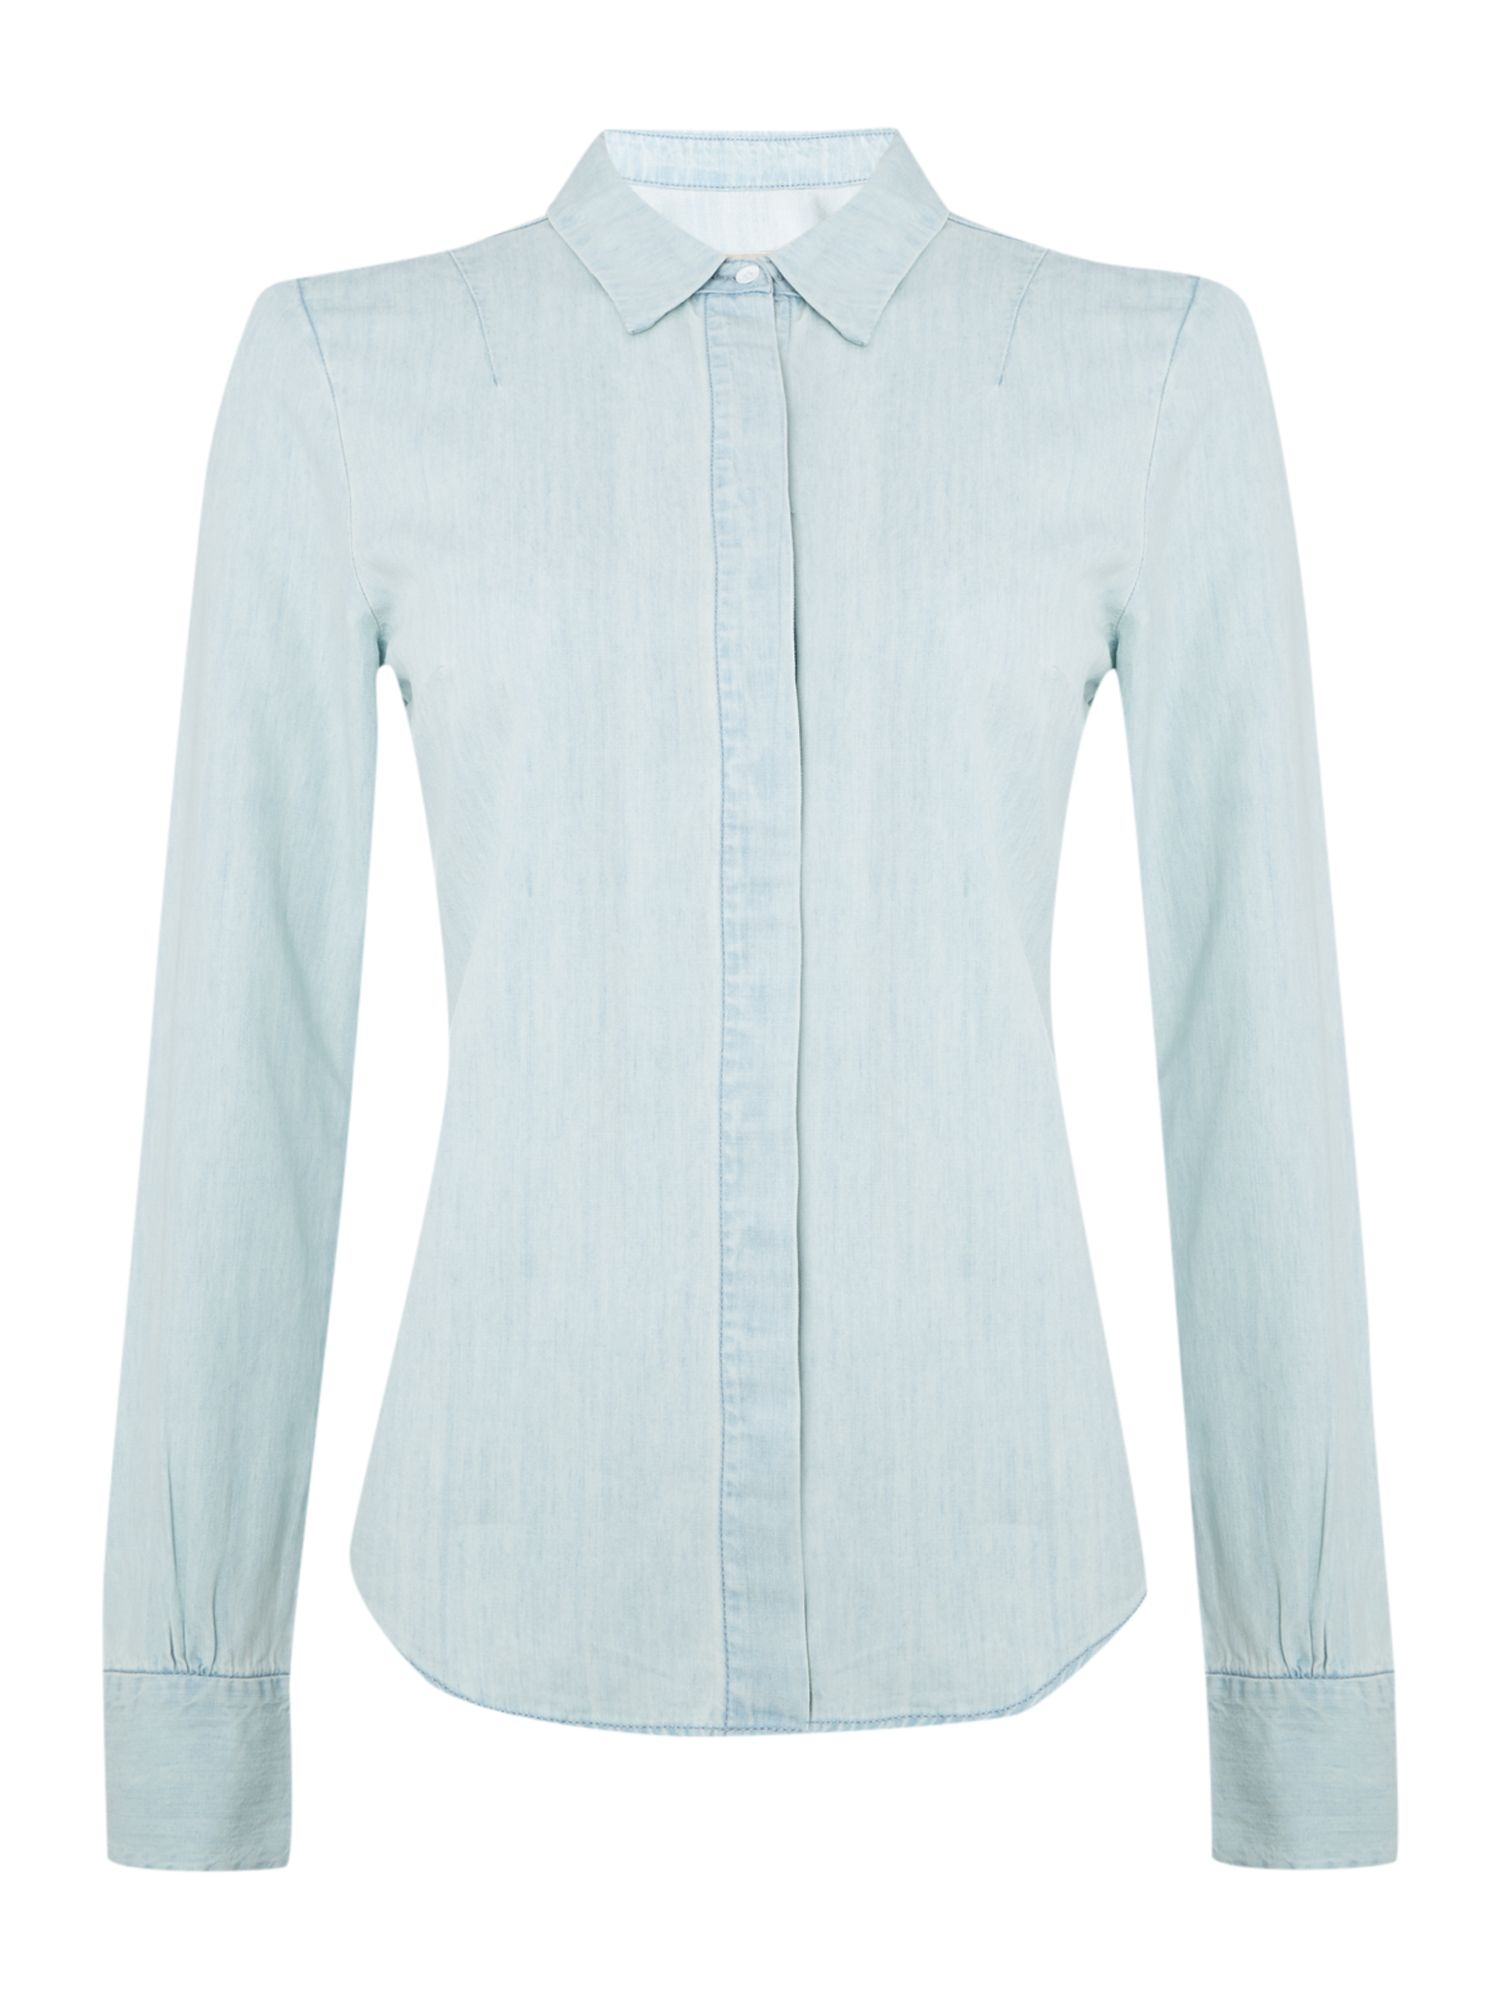 Wynn blench denim shirt